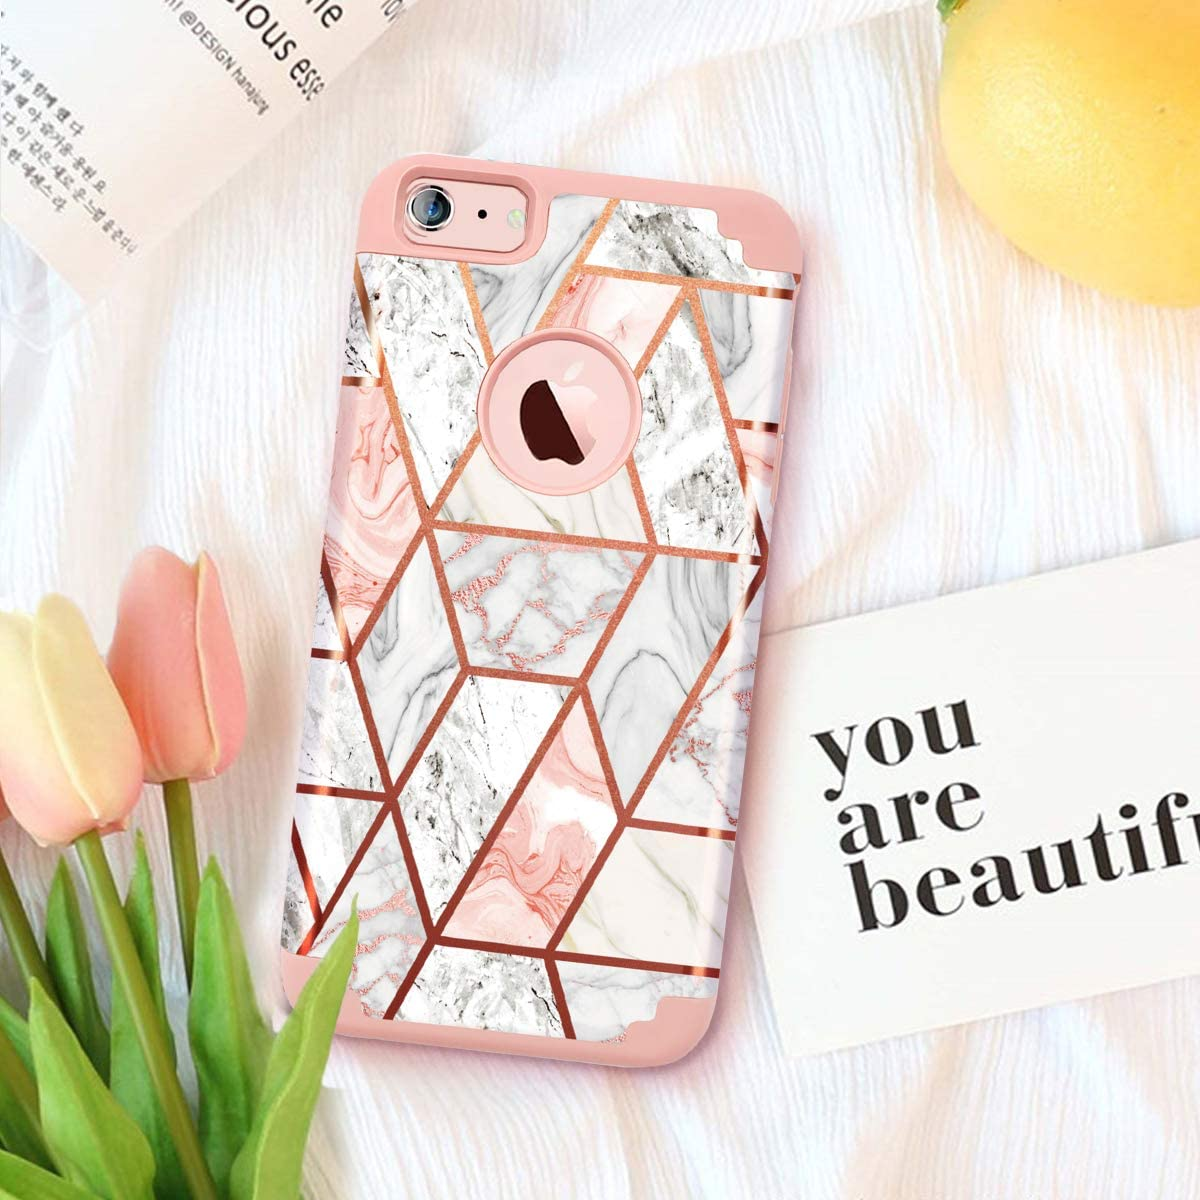 Fingic iPhone 6s Plus Case//iPhone 6 Plus Case Rose Gold Marble Design Shiny Glitter Bumper Hybrid Hard PC Soft Rubber Silicone Anti-Scratch Shockproof Protective Case for Apple 6 Plus 6s Plus 5.5 inch